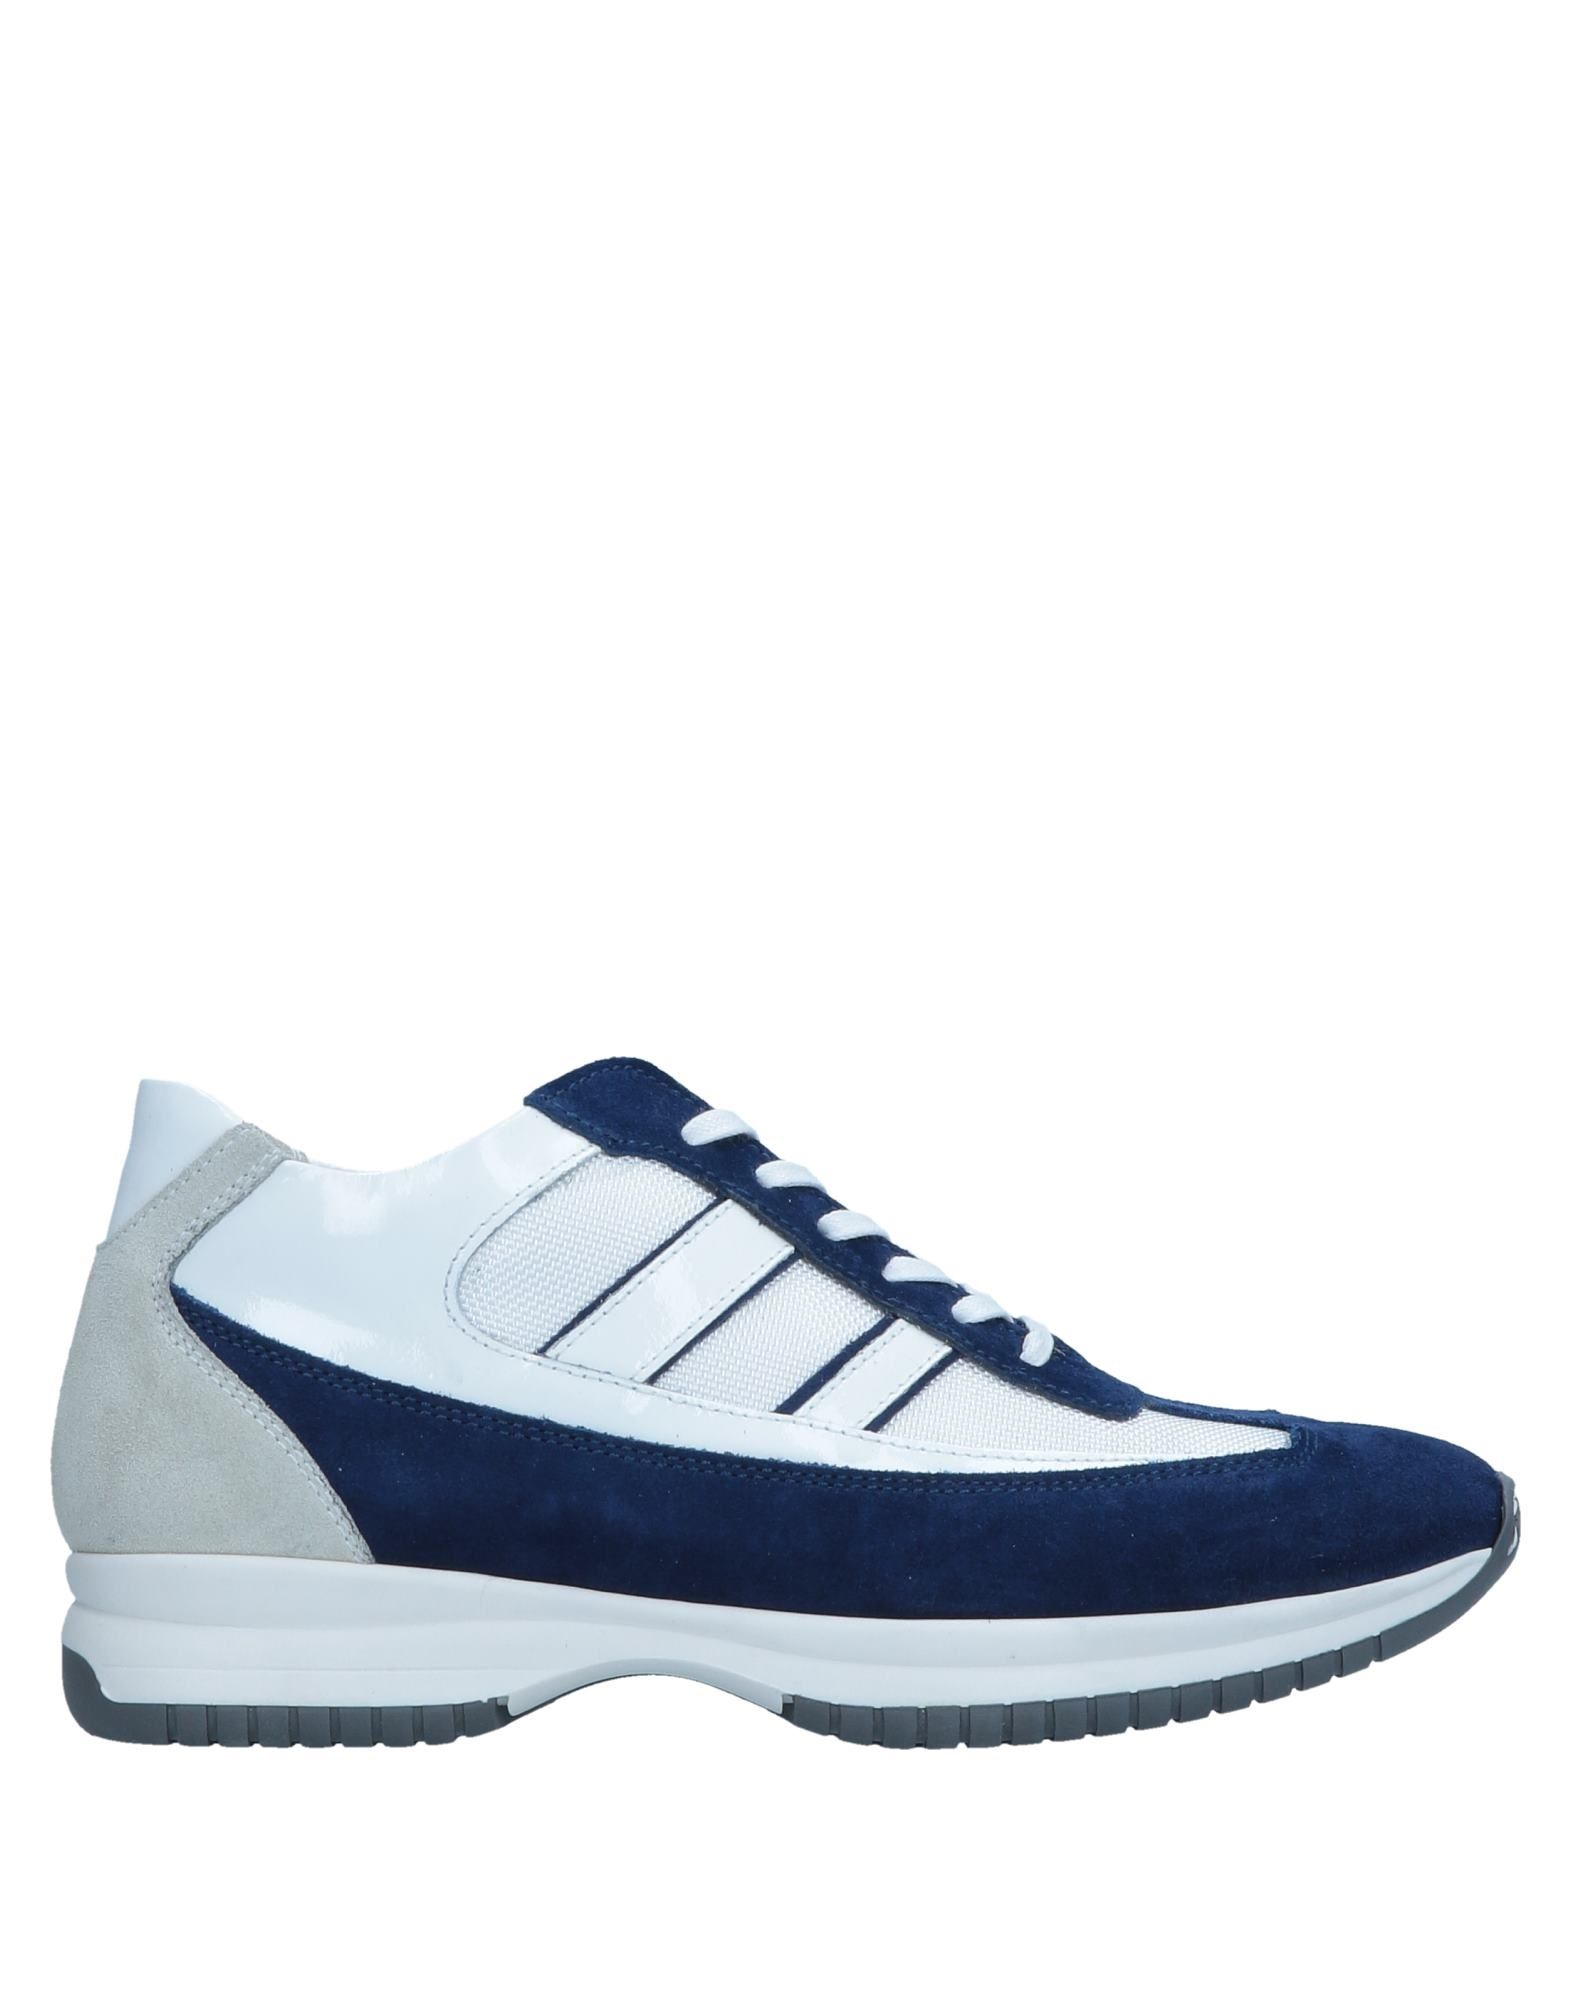 Sneakers Salvo Barone Donna - 11548837WF